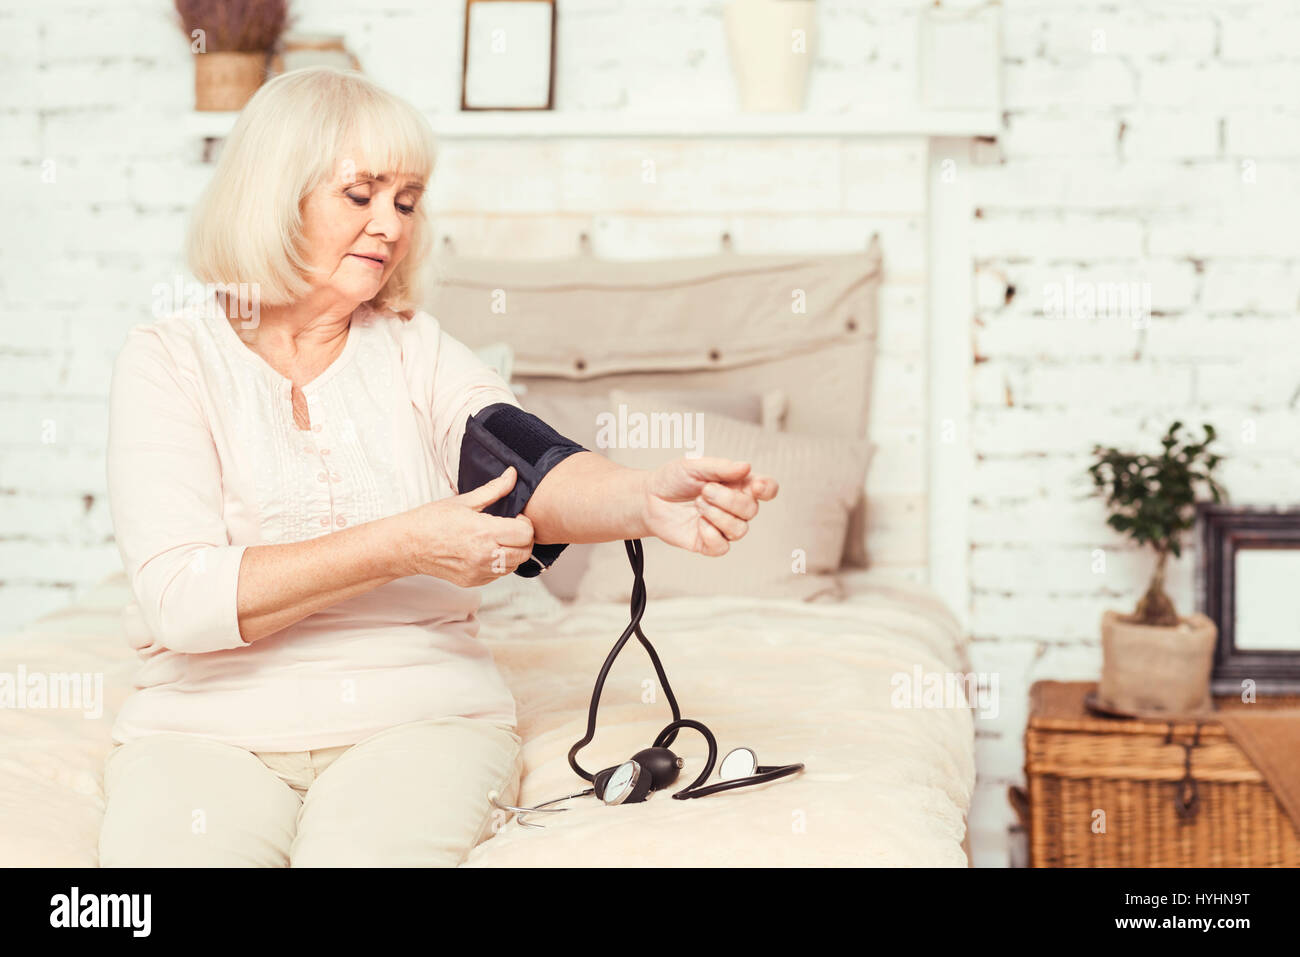 Skillful elderly lady measuring blood pressure at home - Stock Image